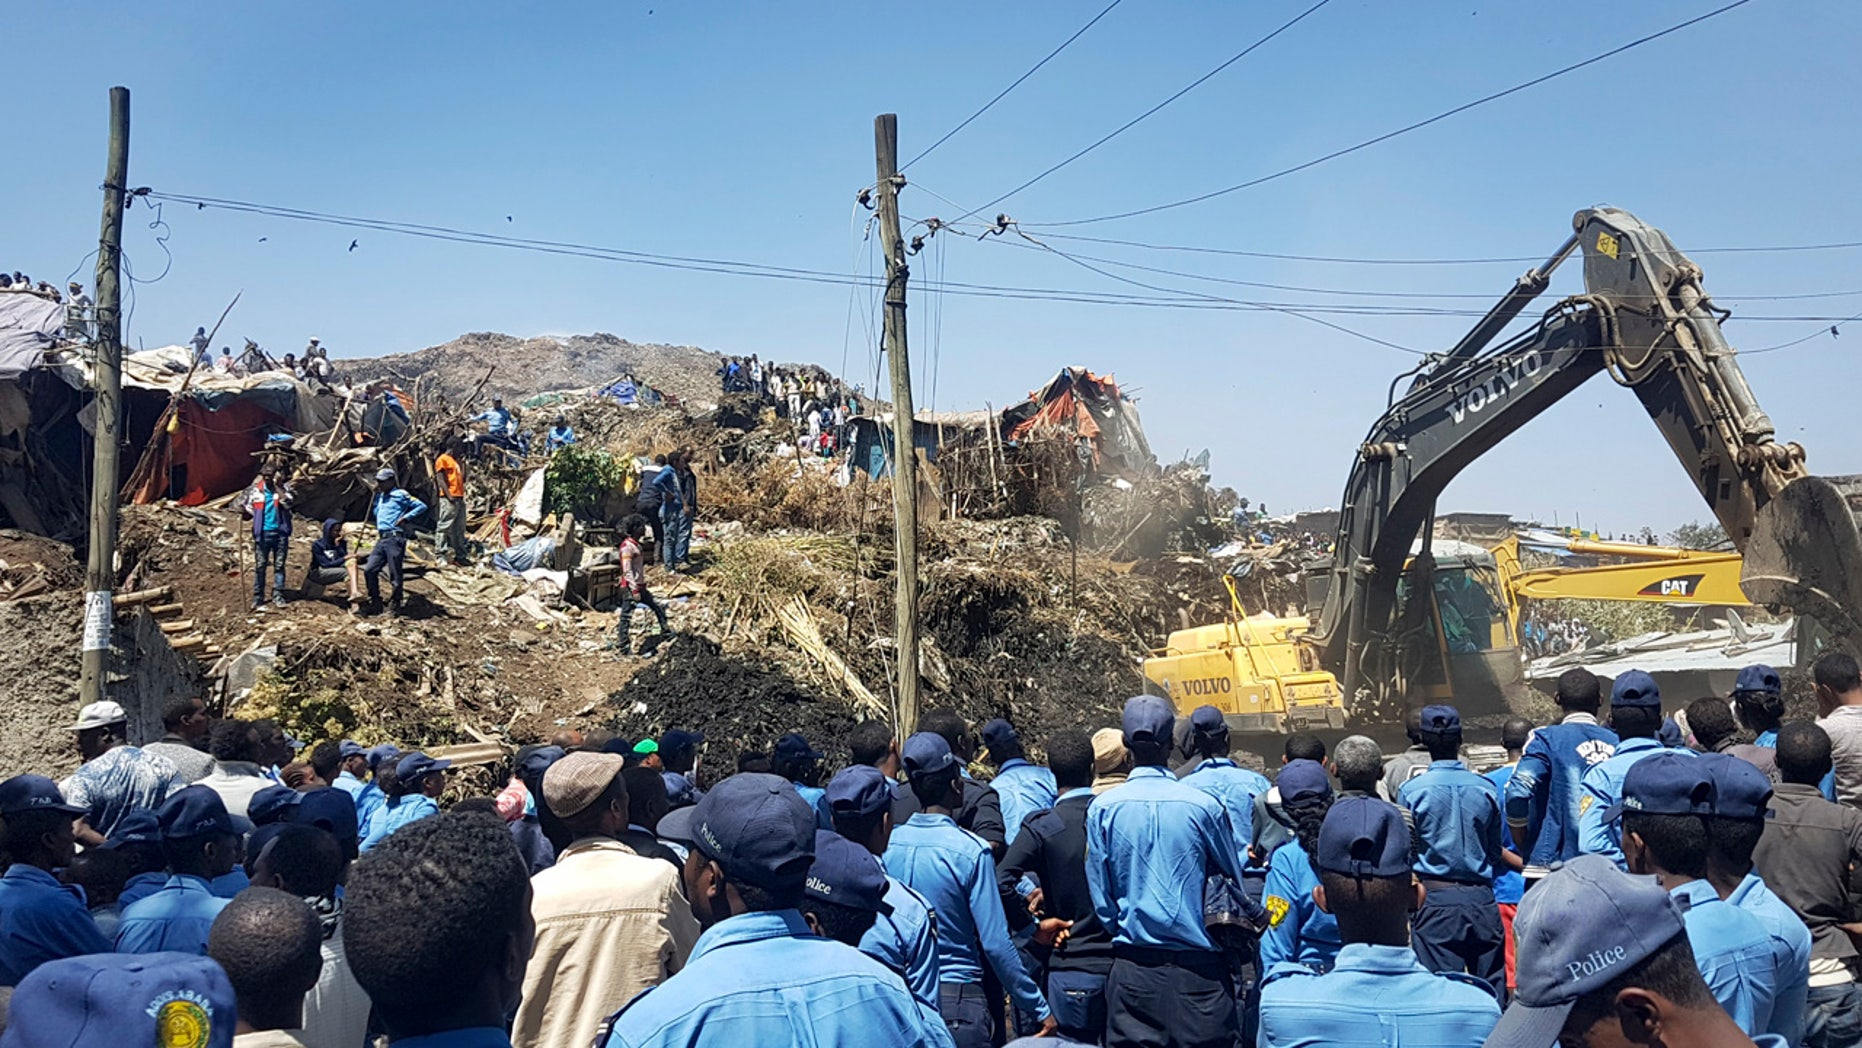 Police officers secure the perimeter at the scene of a garbage landslide, as excavators aid rescue efforts, on the outskirts of the capital Addis Ababa, Ethiopia Sunday, March 12, 2017.